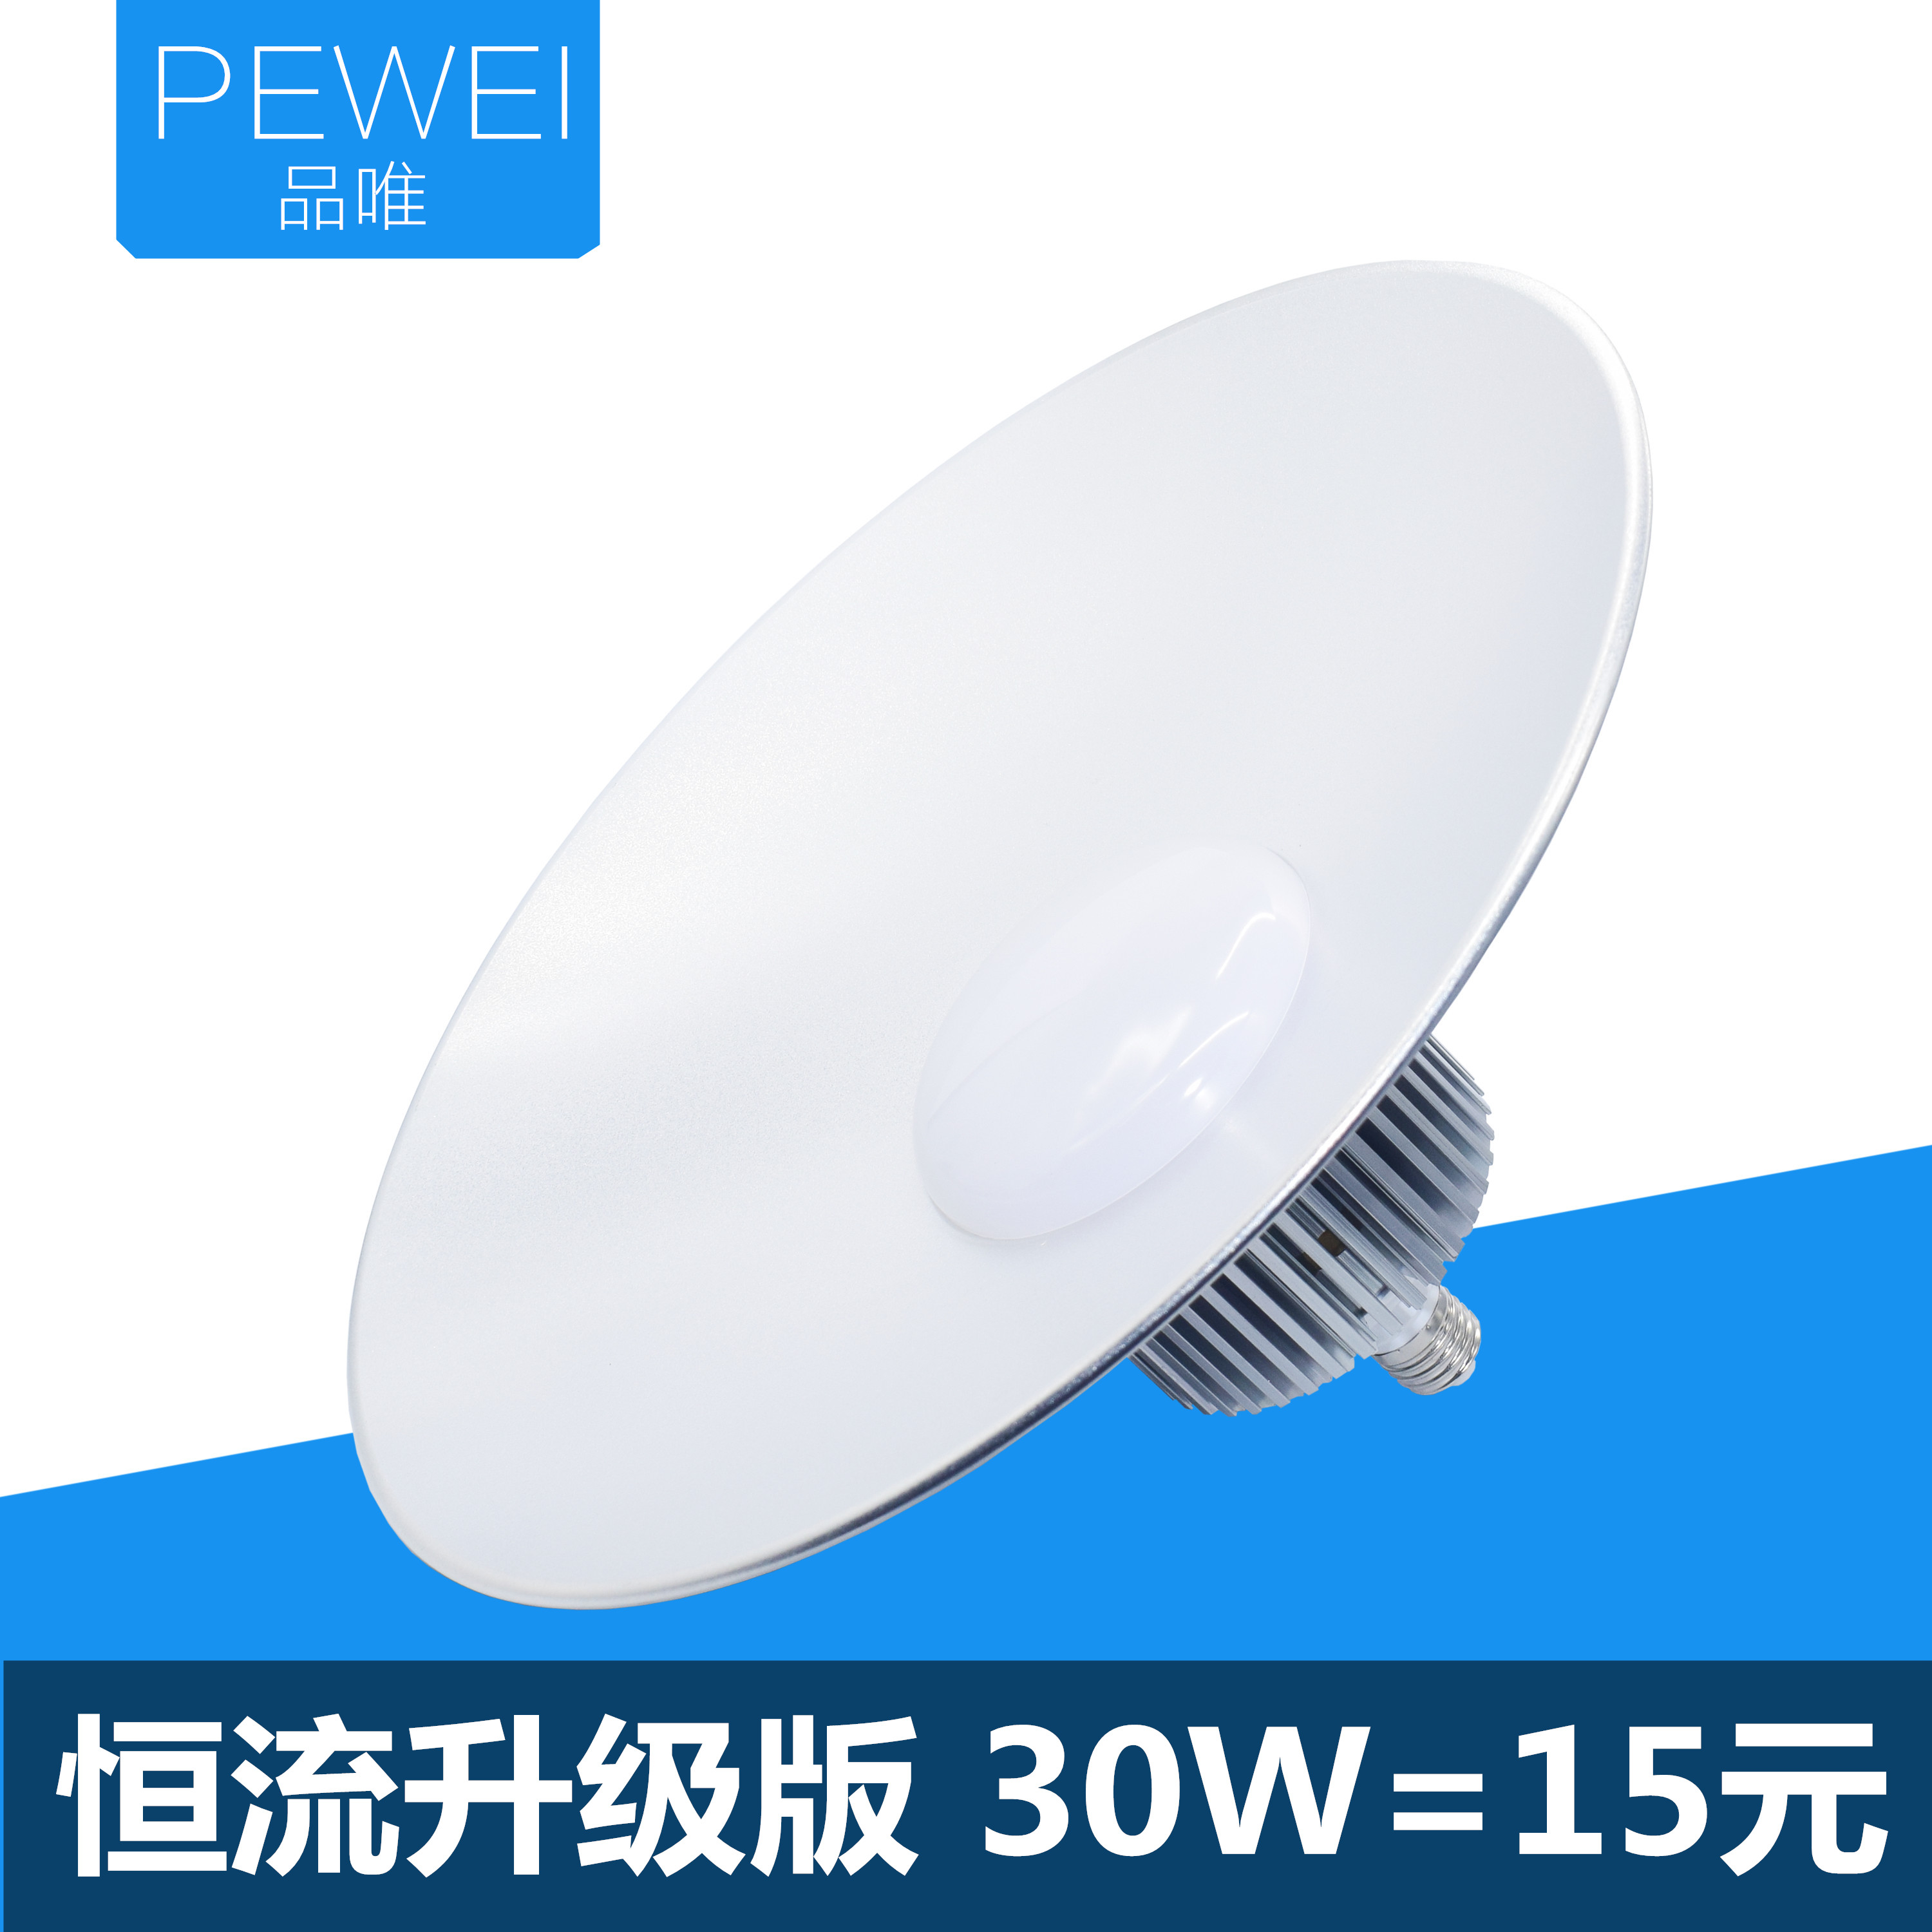 Super bright LED industrial and mining lamp workshop, warehouse lamp, workshop lamp, ceiling lamp, explosion proof lamp, ceiling lamp, 100W50W factory lighting